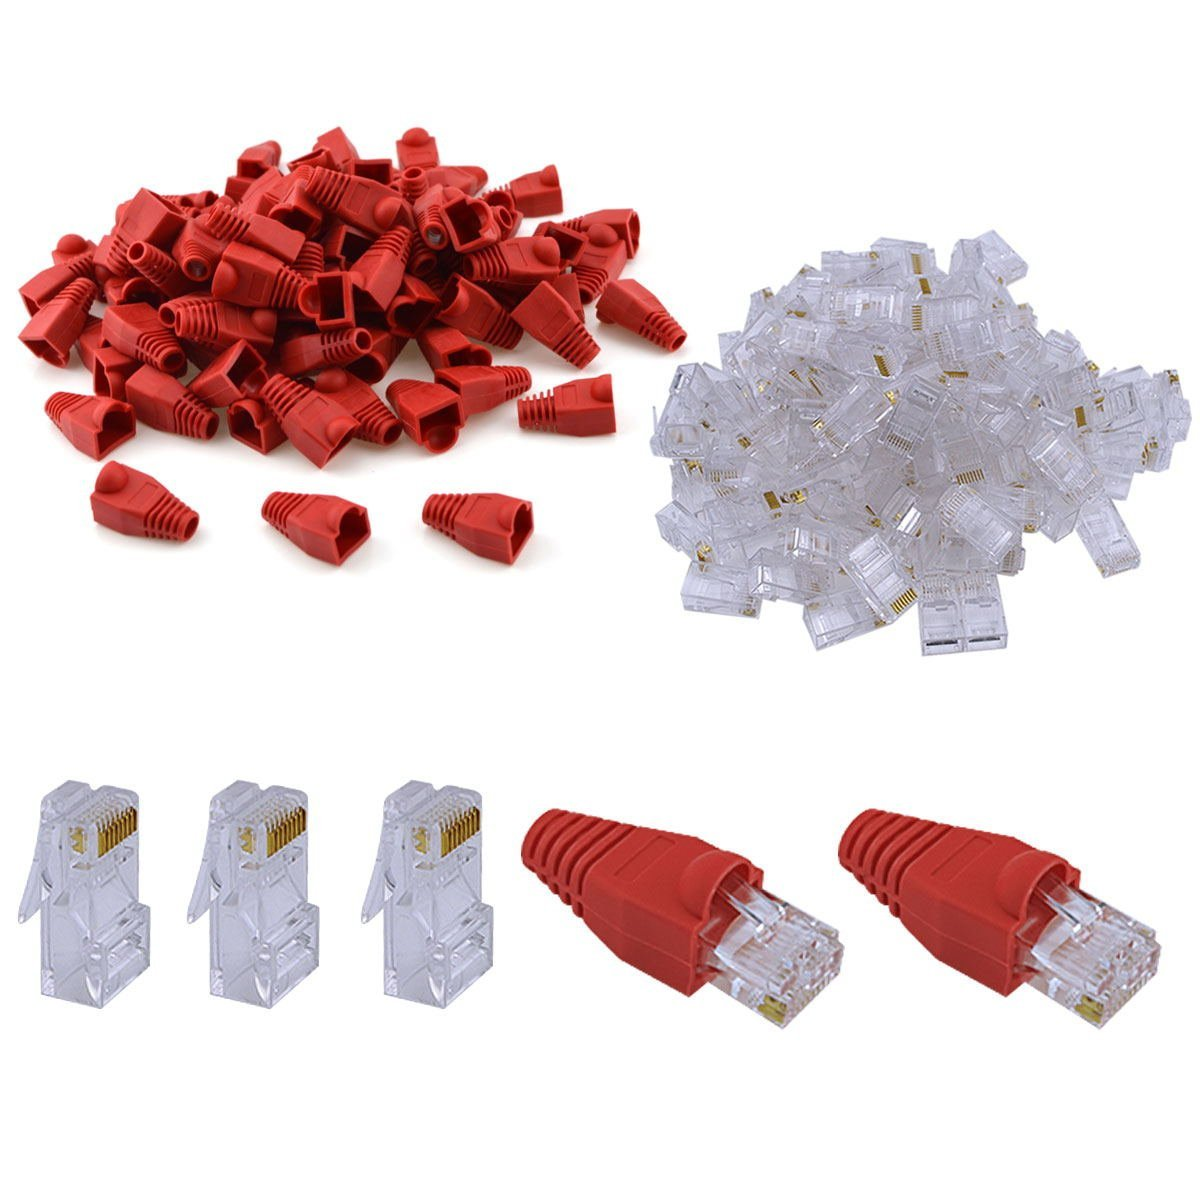 URBEST 100Pcs Plastic Ethernet RJ45 Cable Connector Boots Cover and 100pcs 8P8C Modular CAT5 Crystal Network Connector(RJ45 Boots Cover+ CAT5 Connector) (Red RJ45 Boots+8P8C Connector)